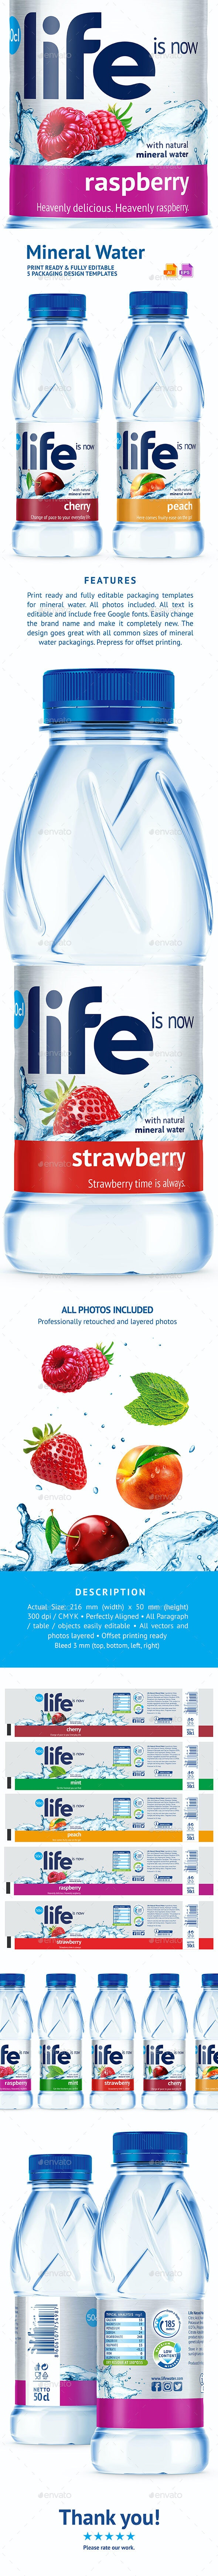 5 Mineral Water Packaging Design Templates - Packaging Print Templates